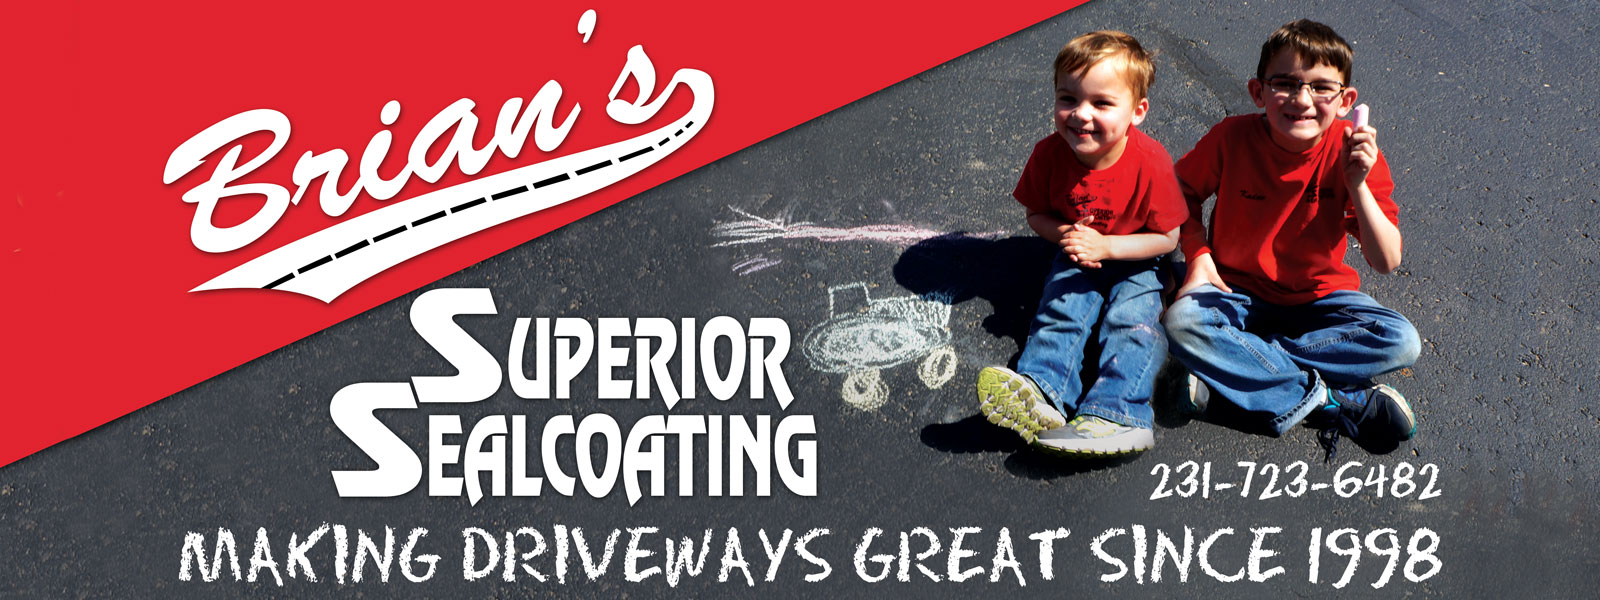 Billboard for Brian's Superior Sealcoating of Manistee Michigan. Making Driveways Great since 1998. Phone 231-723-6482